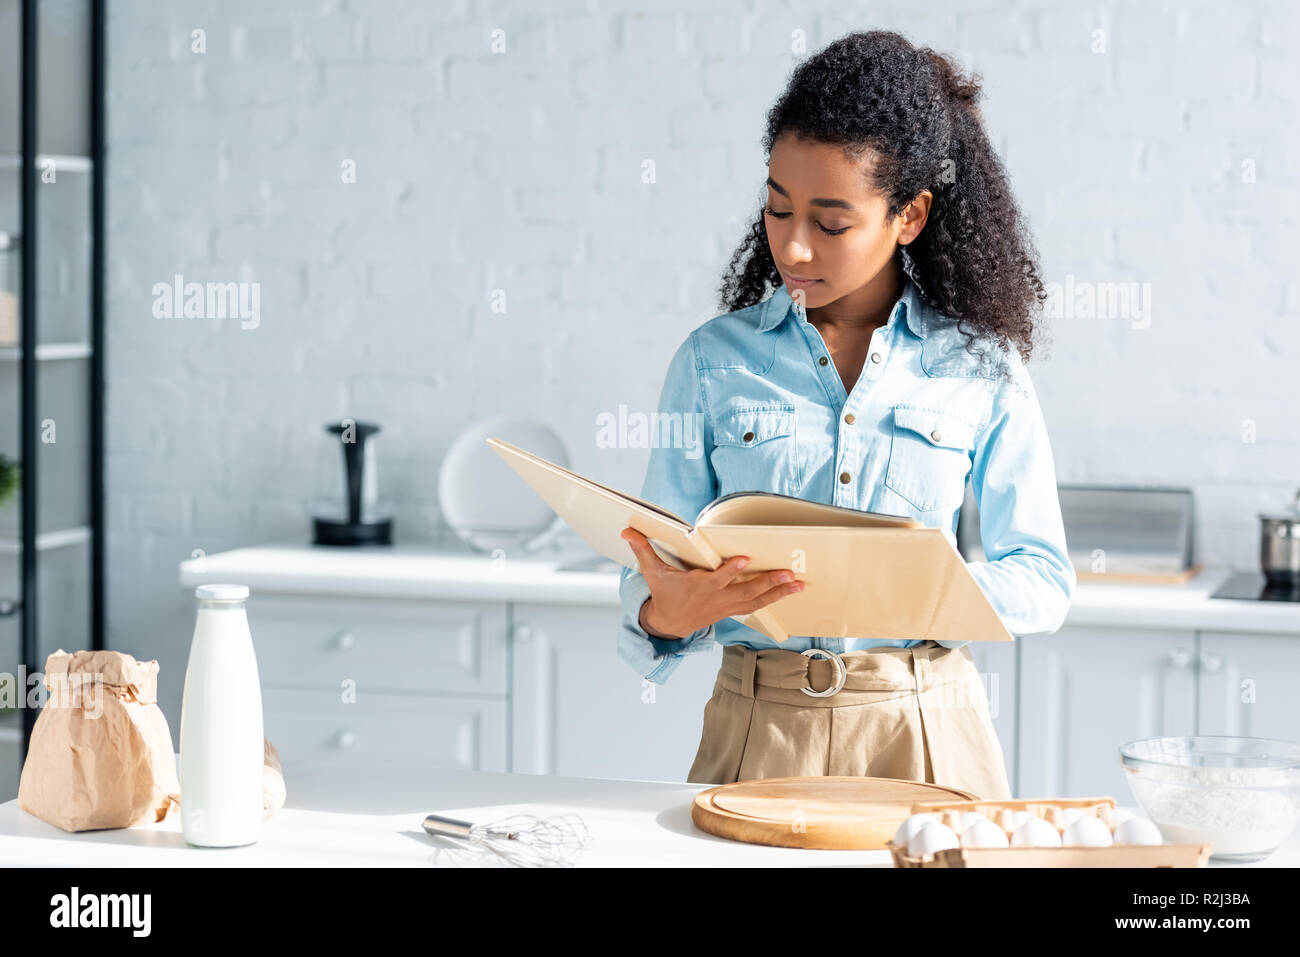 attractive african american woman reading cookbook in kitchen - Stock Image